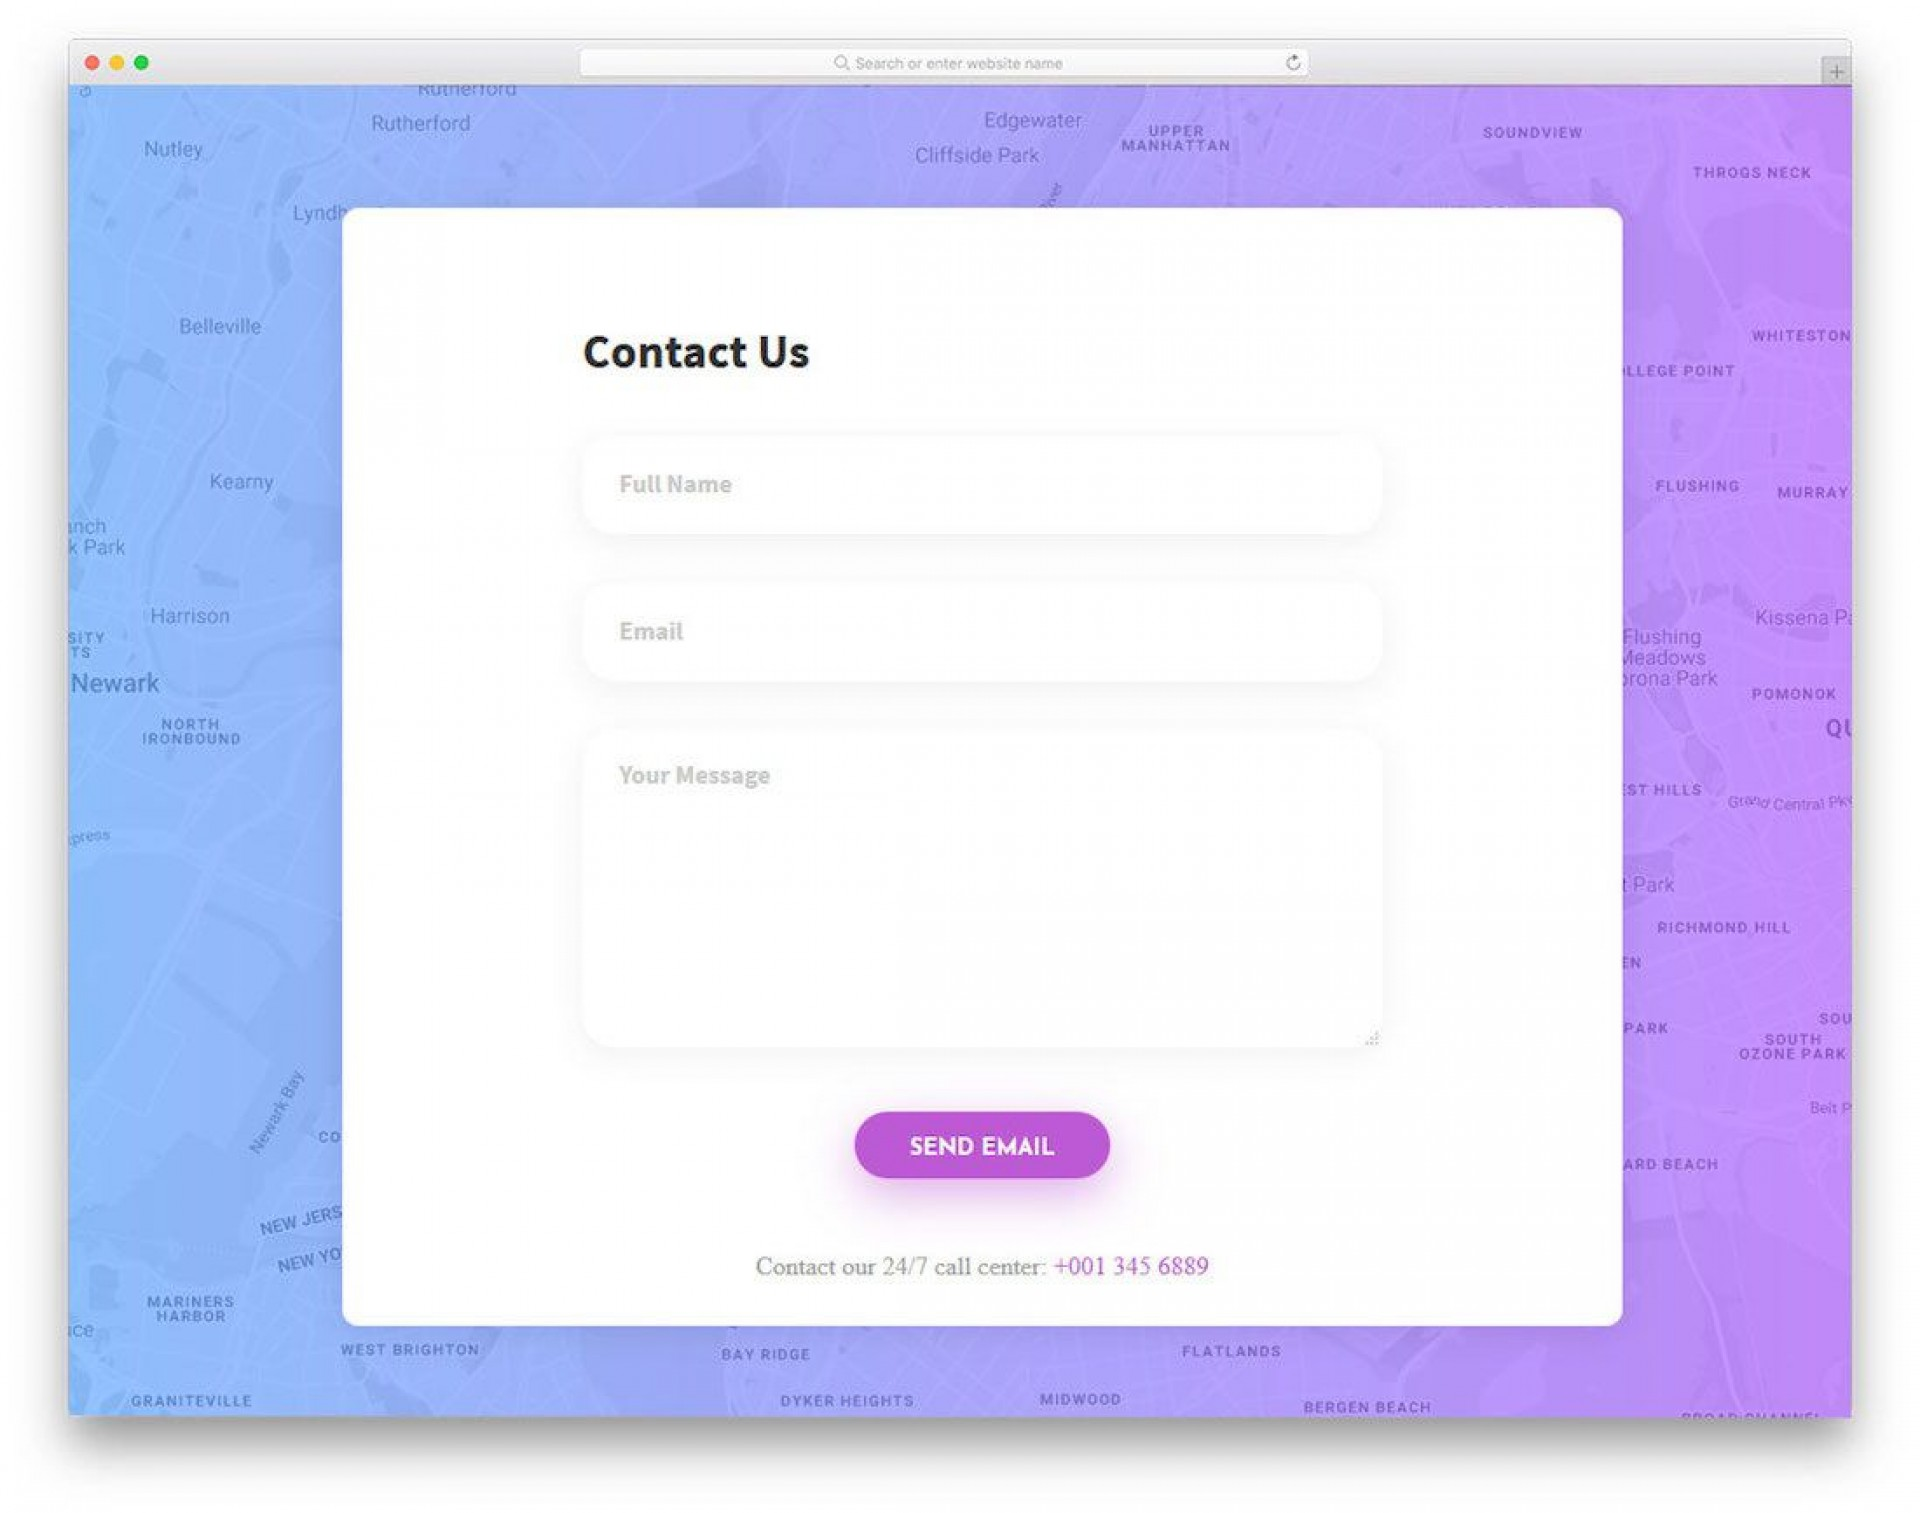 006 Incredible Free Html Form Template Inspiration  Templates Survey Application Download Registration1920